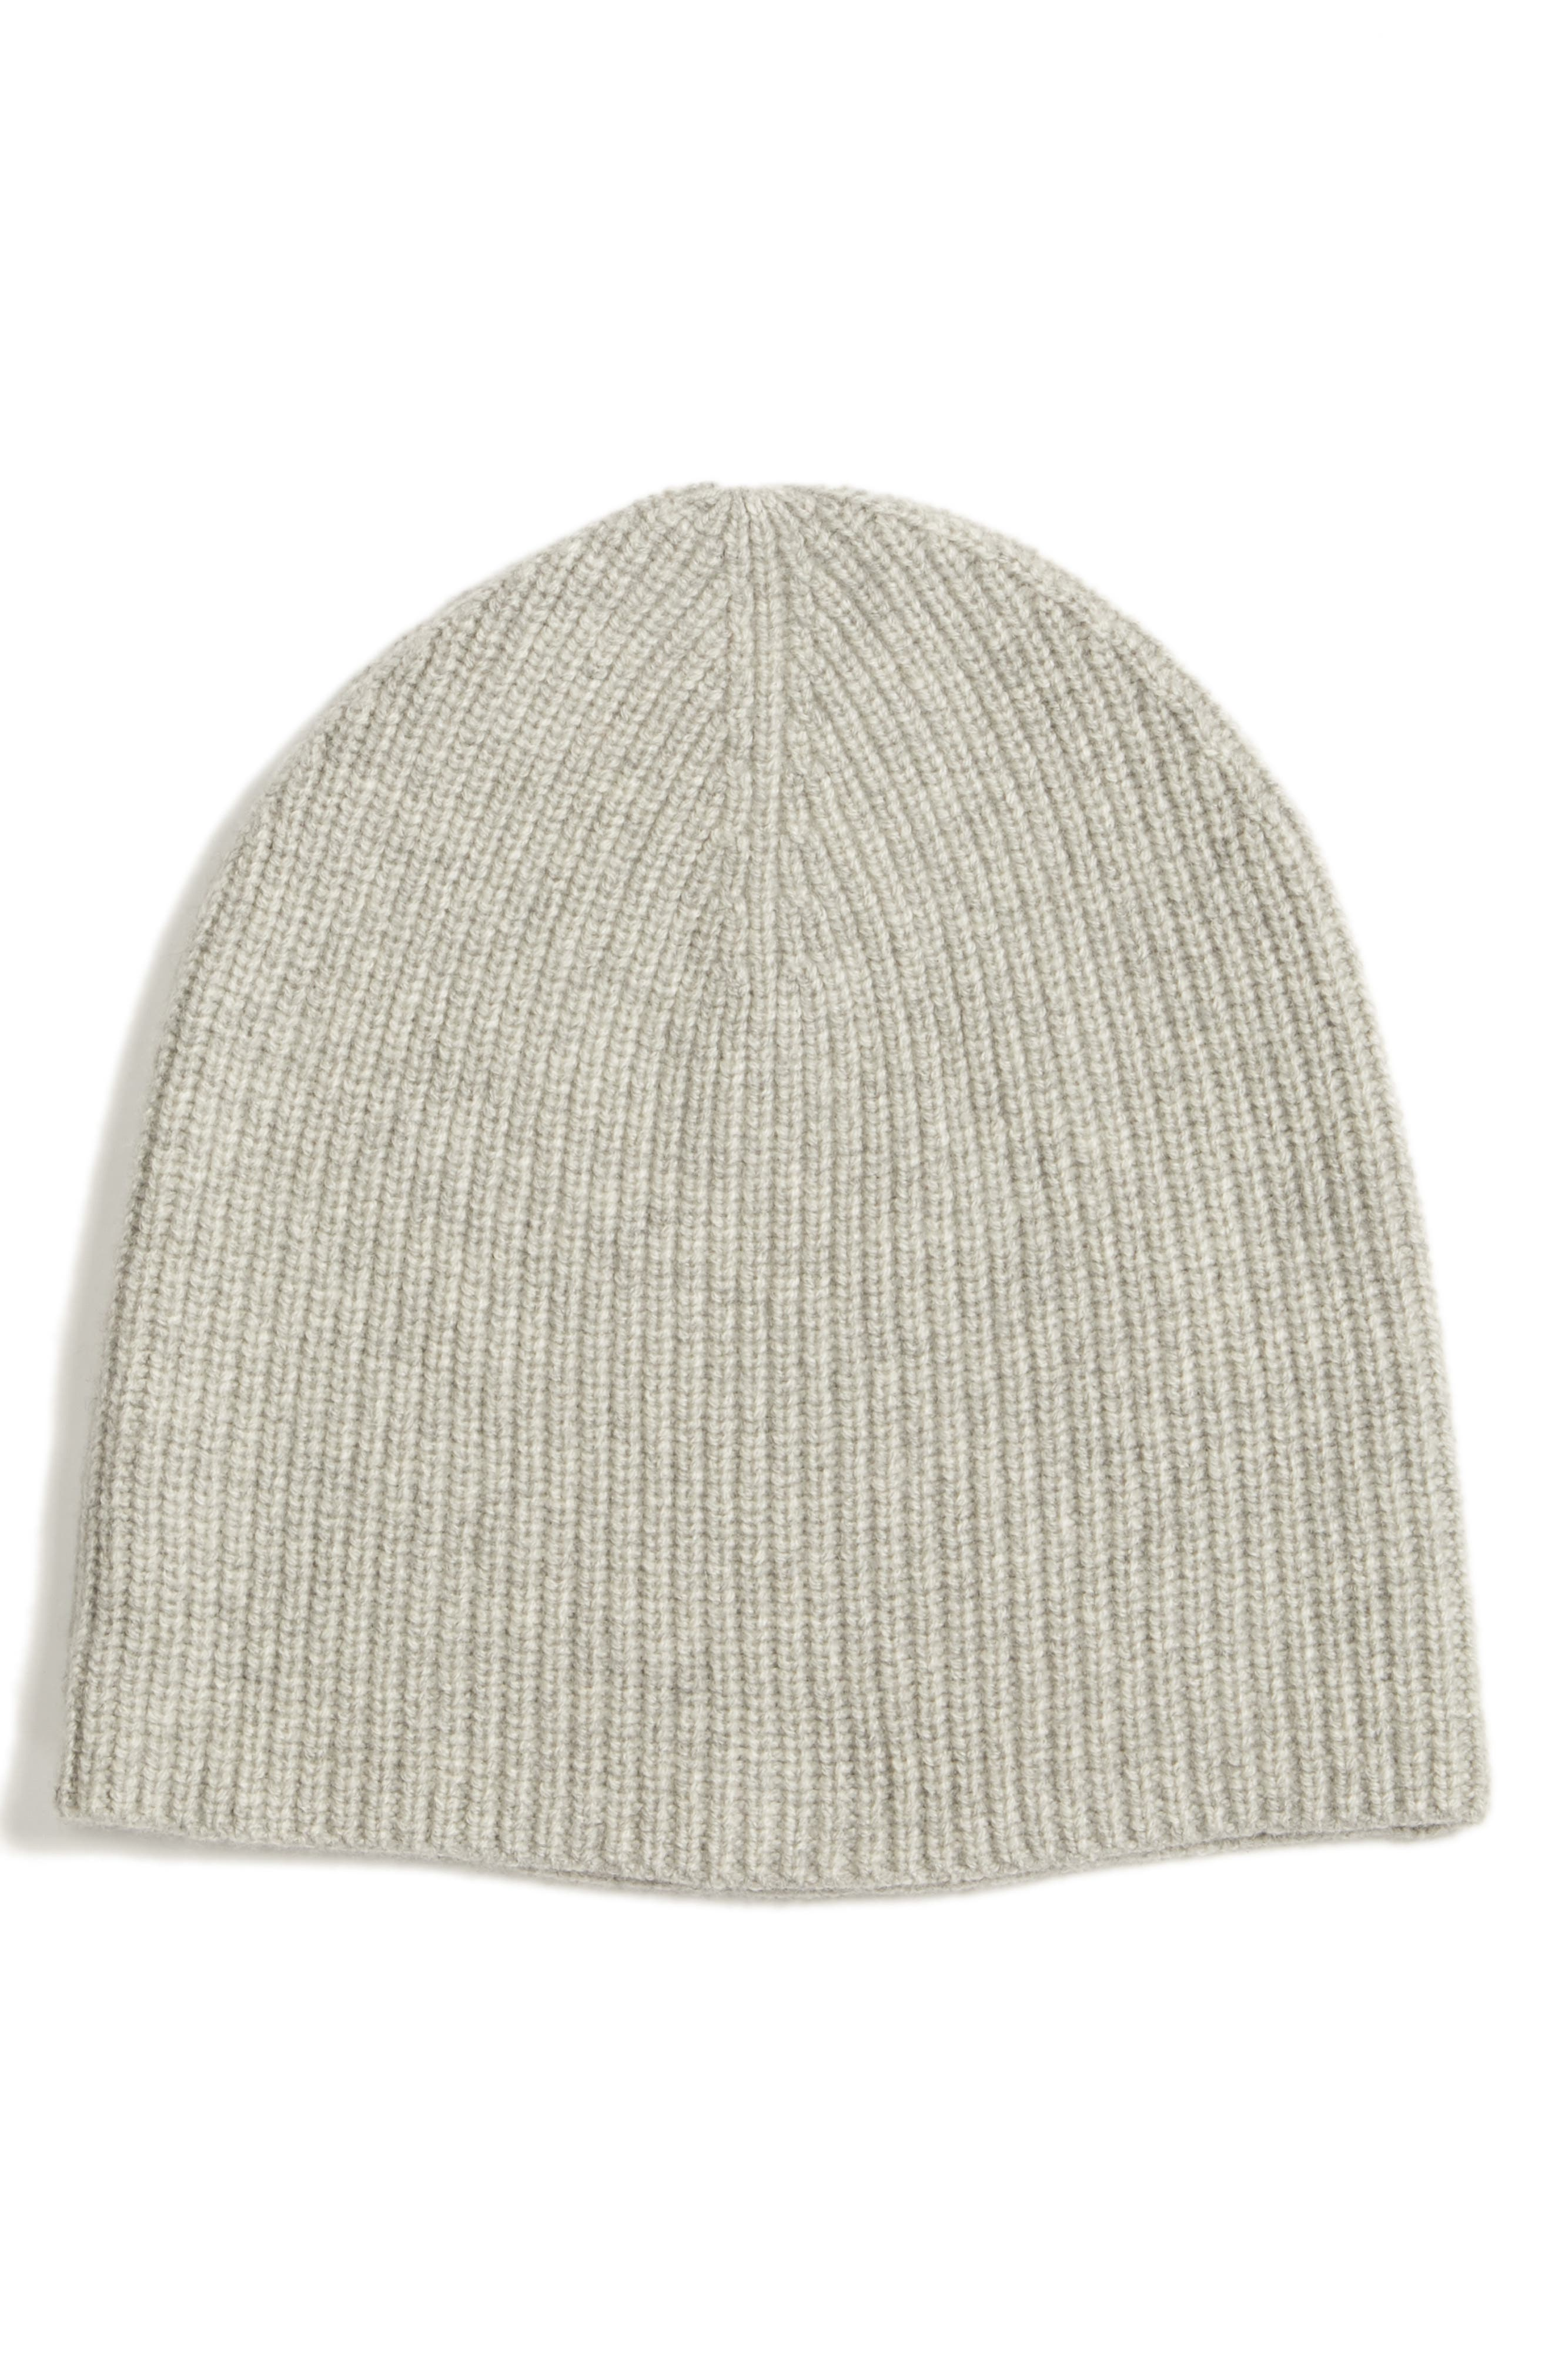 EILEEN FISHER Cashmere Blend Beanie, Main, color, 020